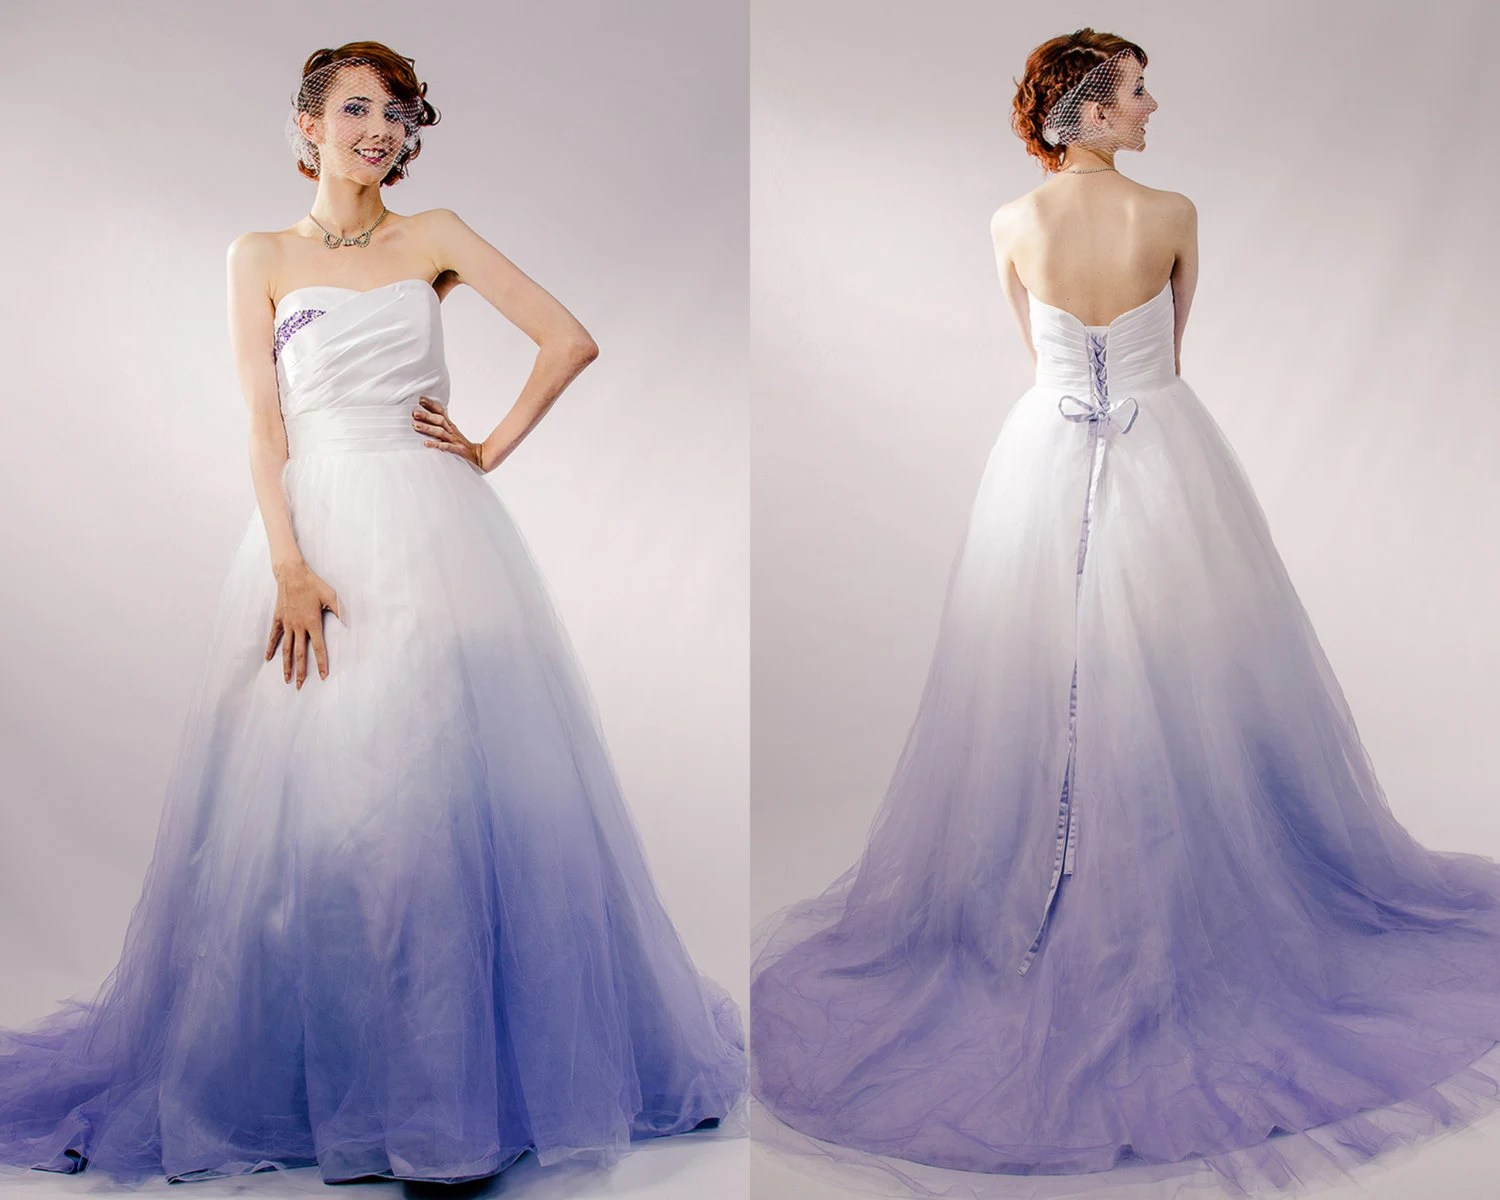 ombre wedding dress colorful wedding dresses Dip Dyed Wedding Dress Purple Ombre Wedding Dress Couture Wedding Gown Colored Wedding Dress